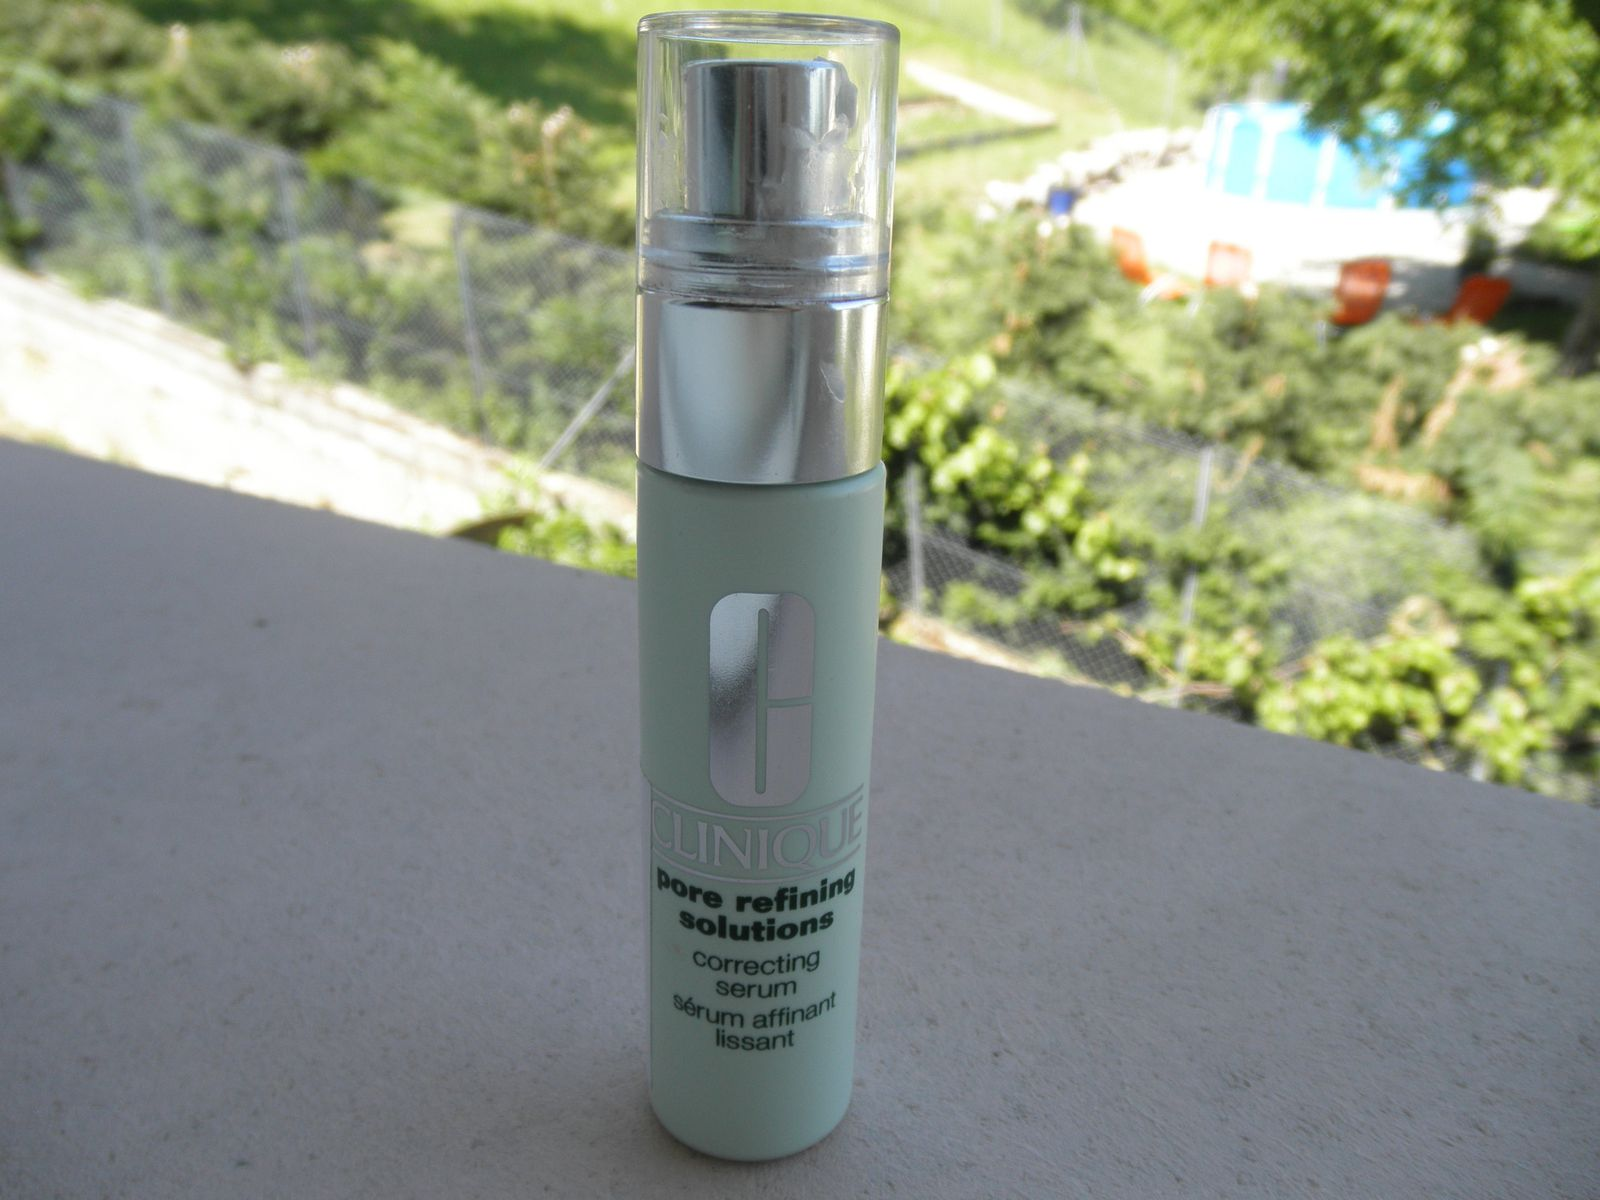 Pore Refining Solution de Clinique